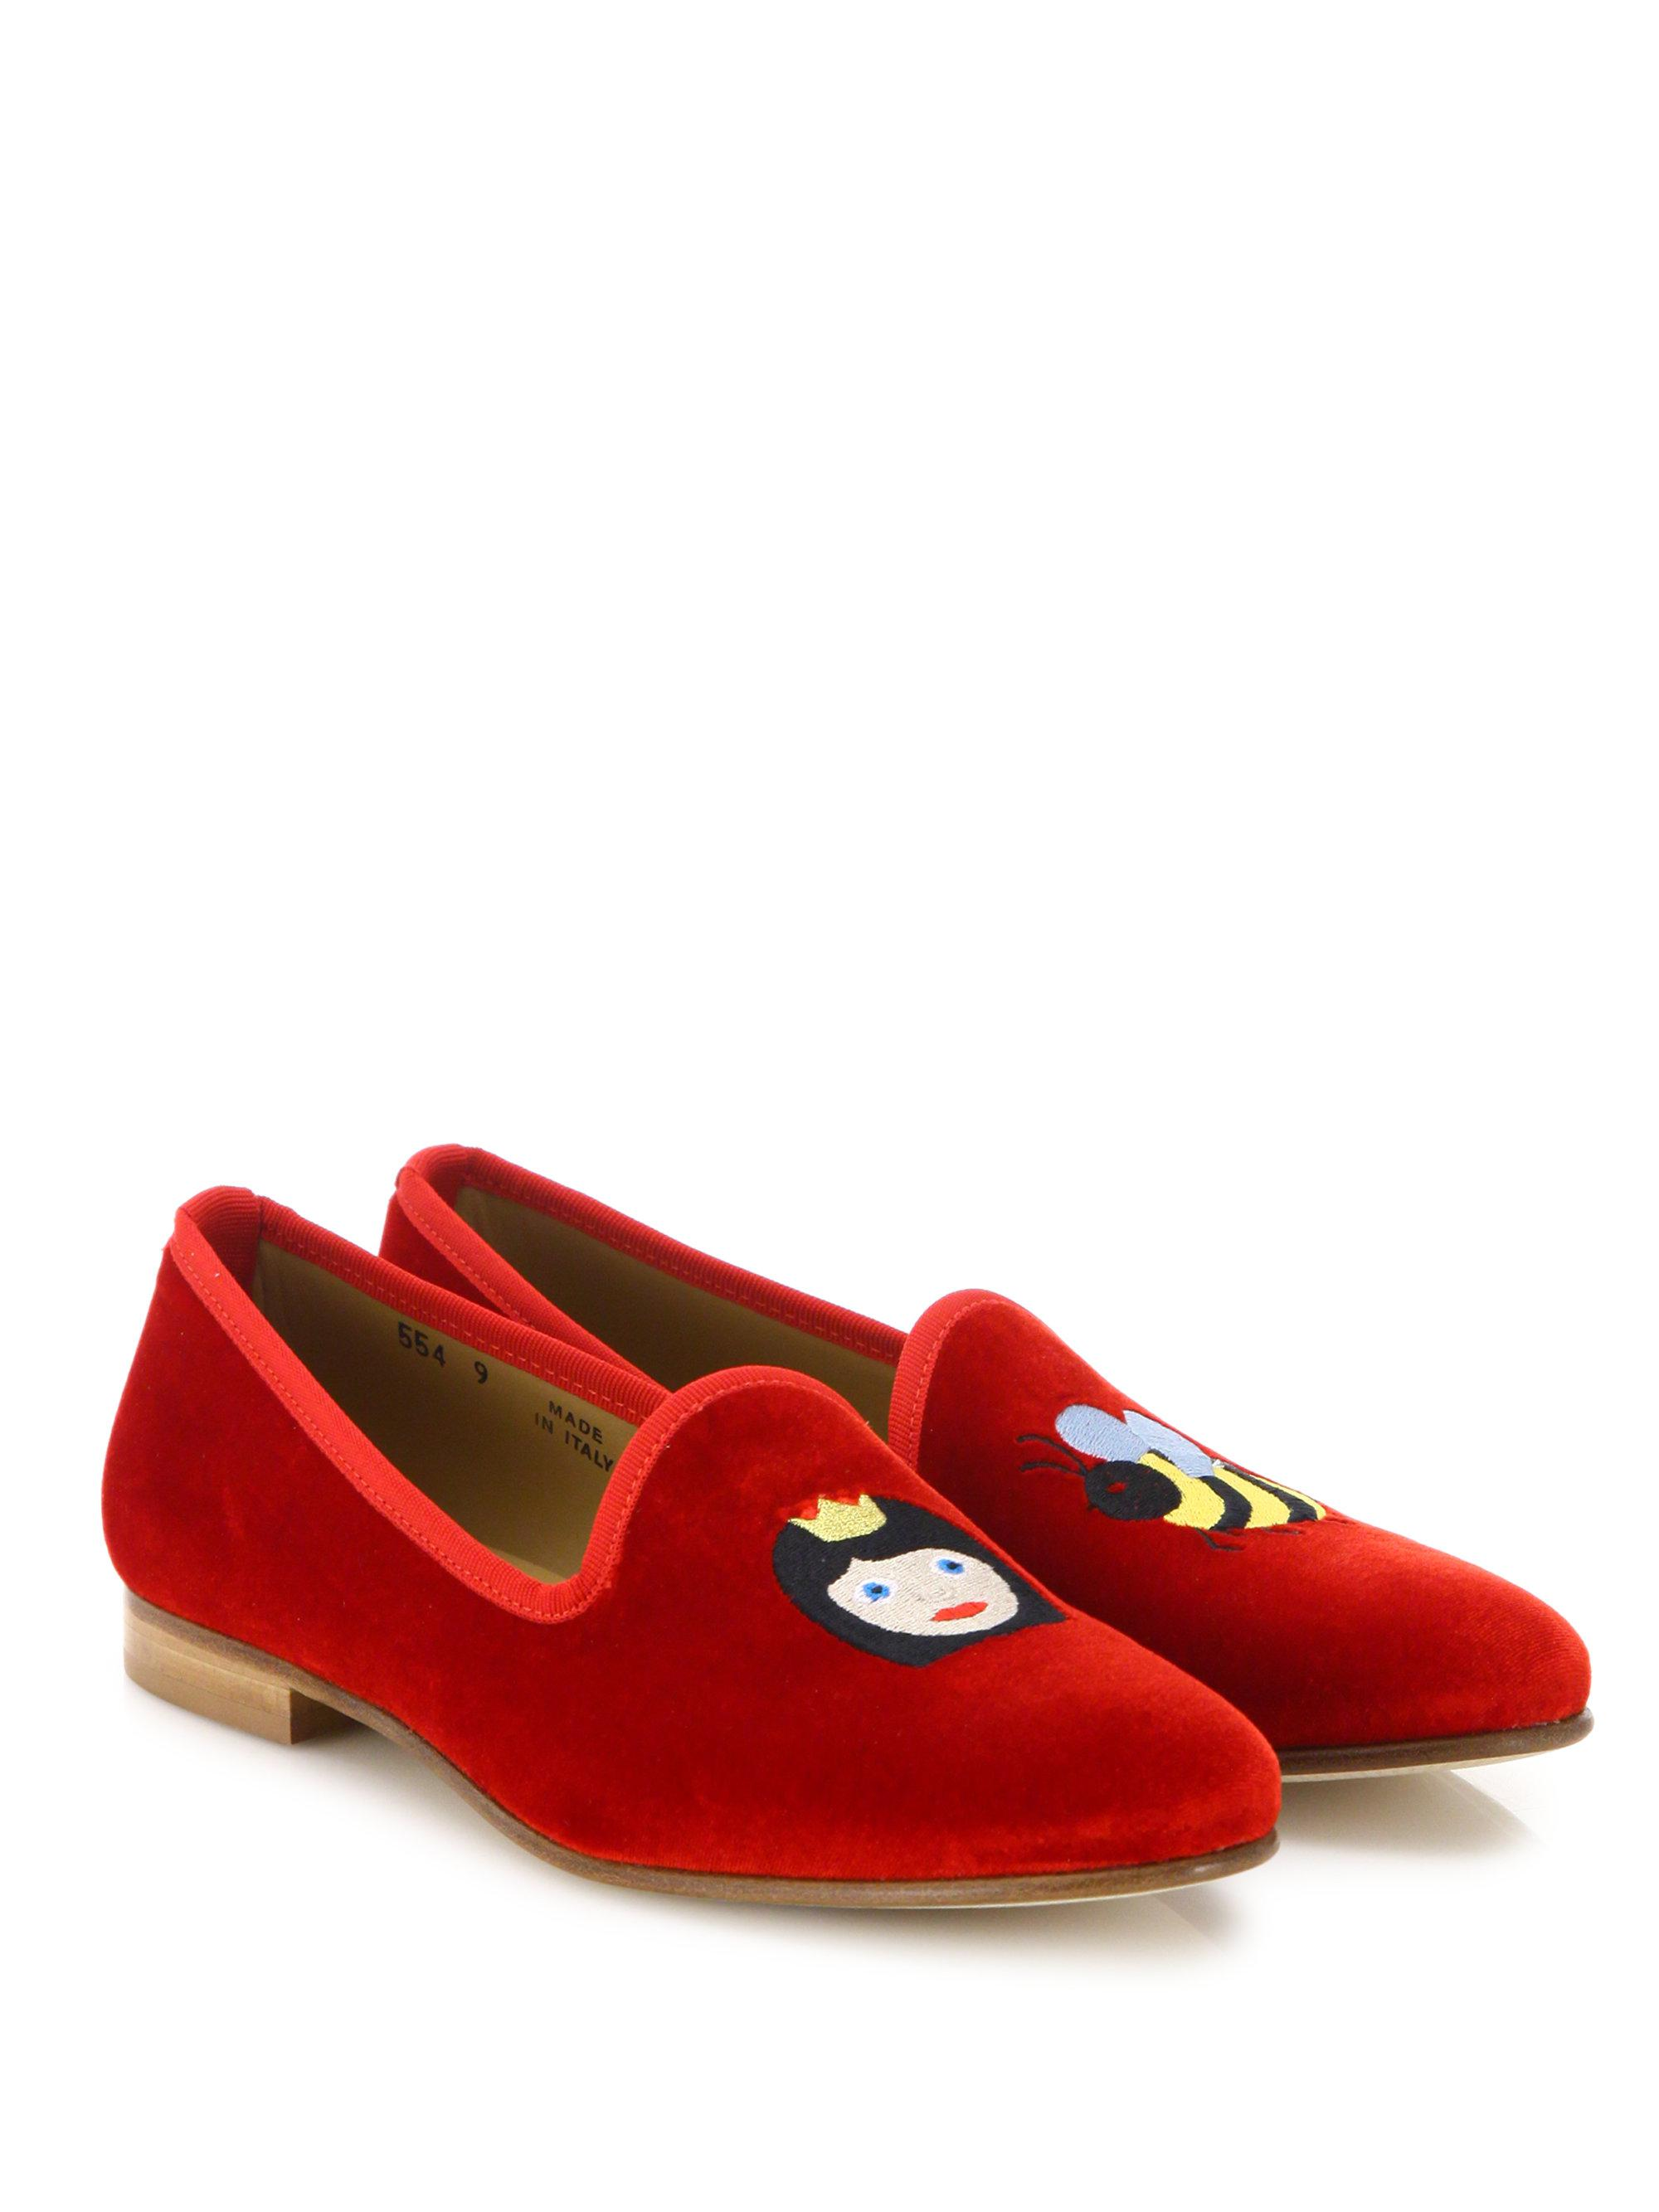 DEL TORO Queen Bee Velvet Smoking Loafers